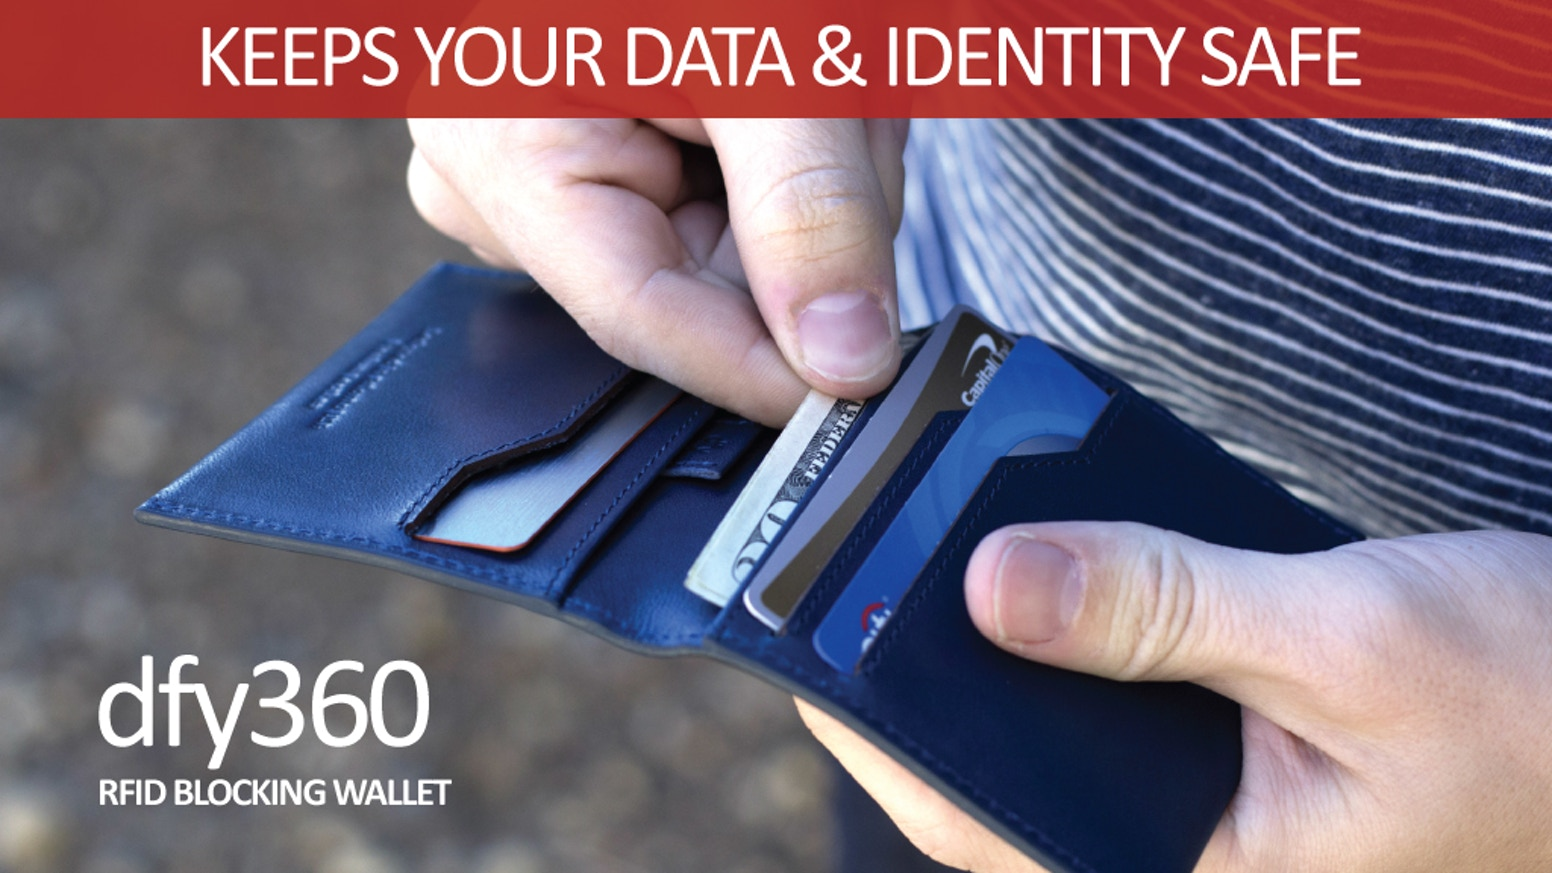 Keep your Identity and Data Safe with Triple Layer RFID Blocking Protection in a premium leather ultra slim profile.